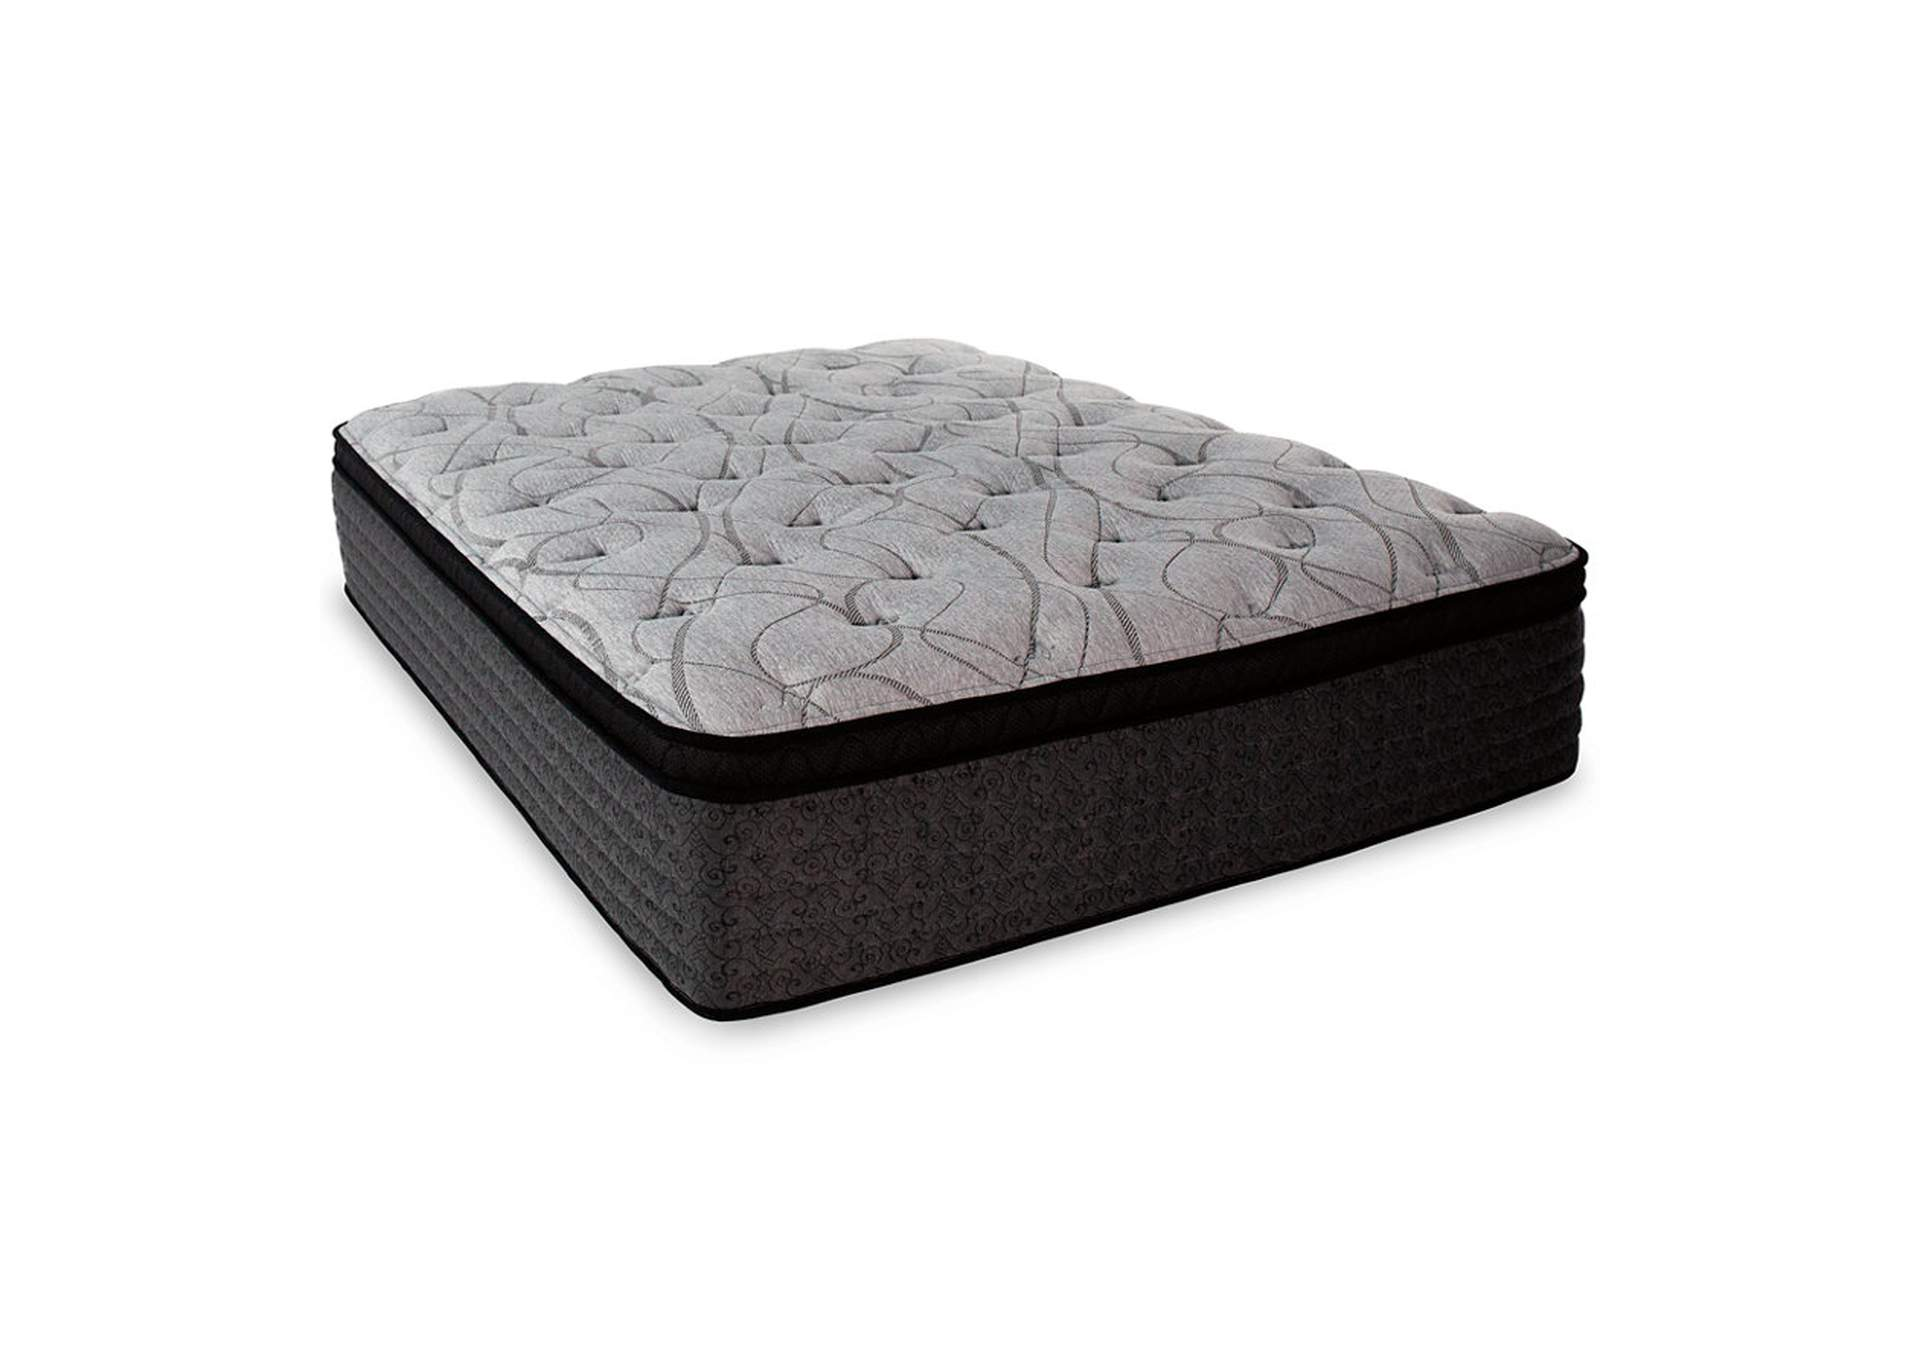 Mt Dana Euro Top King Mattress w/Foundation,Sierra Sleep by Ashley